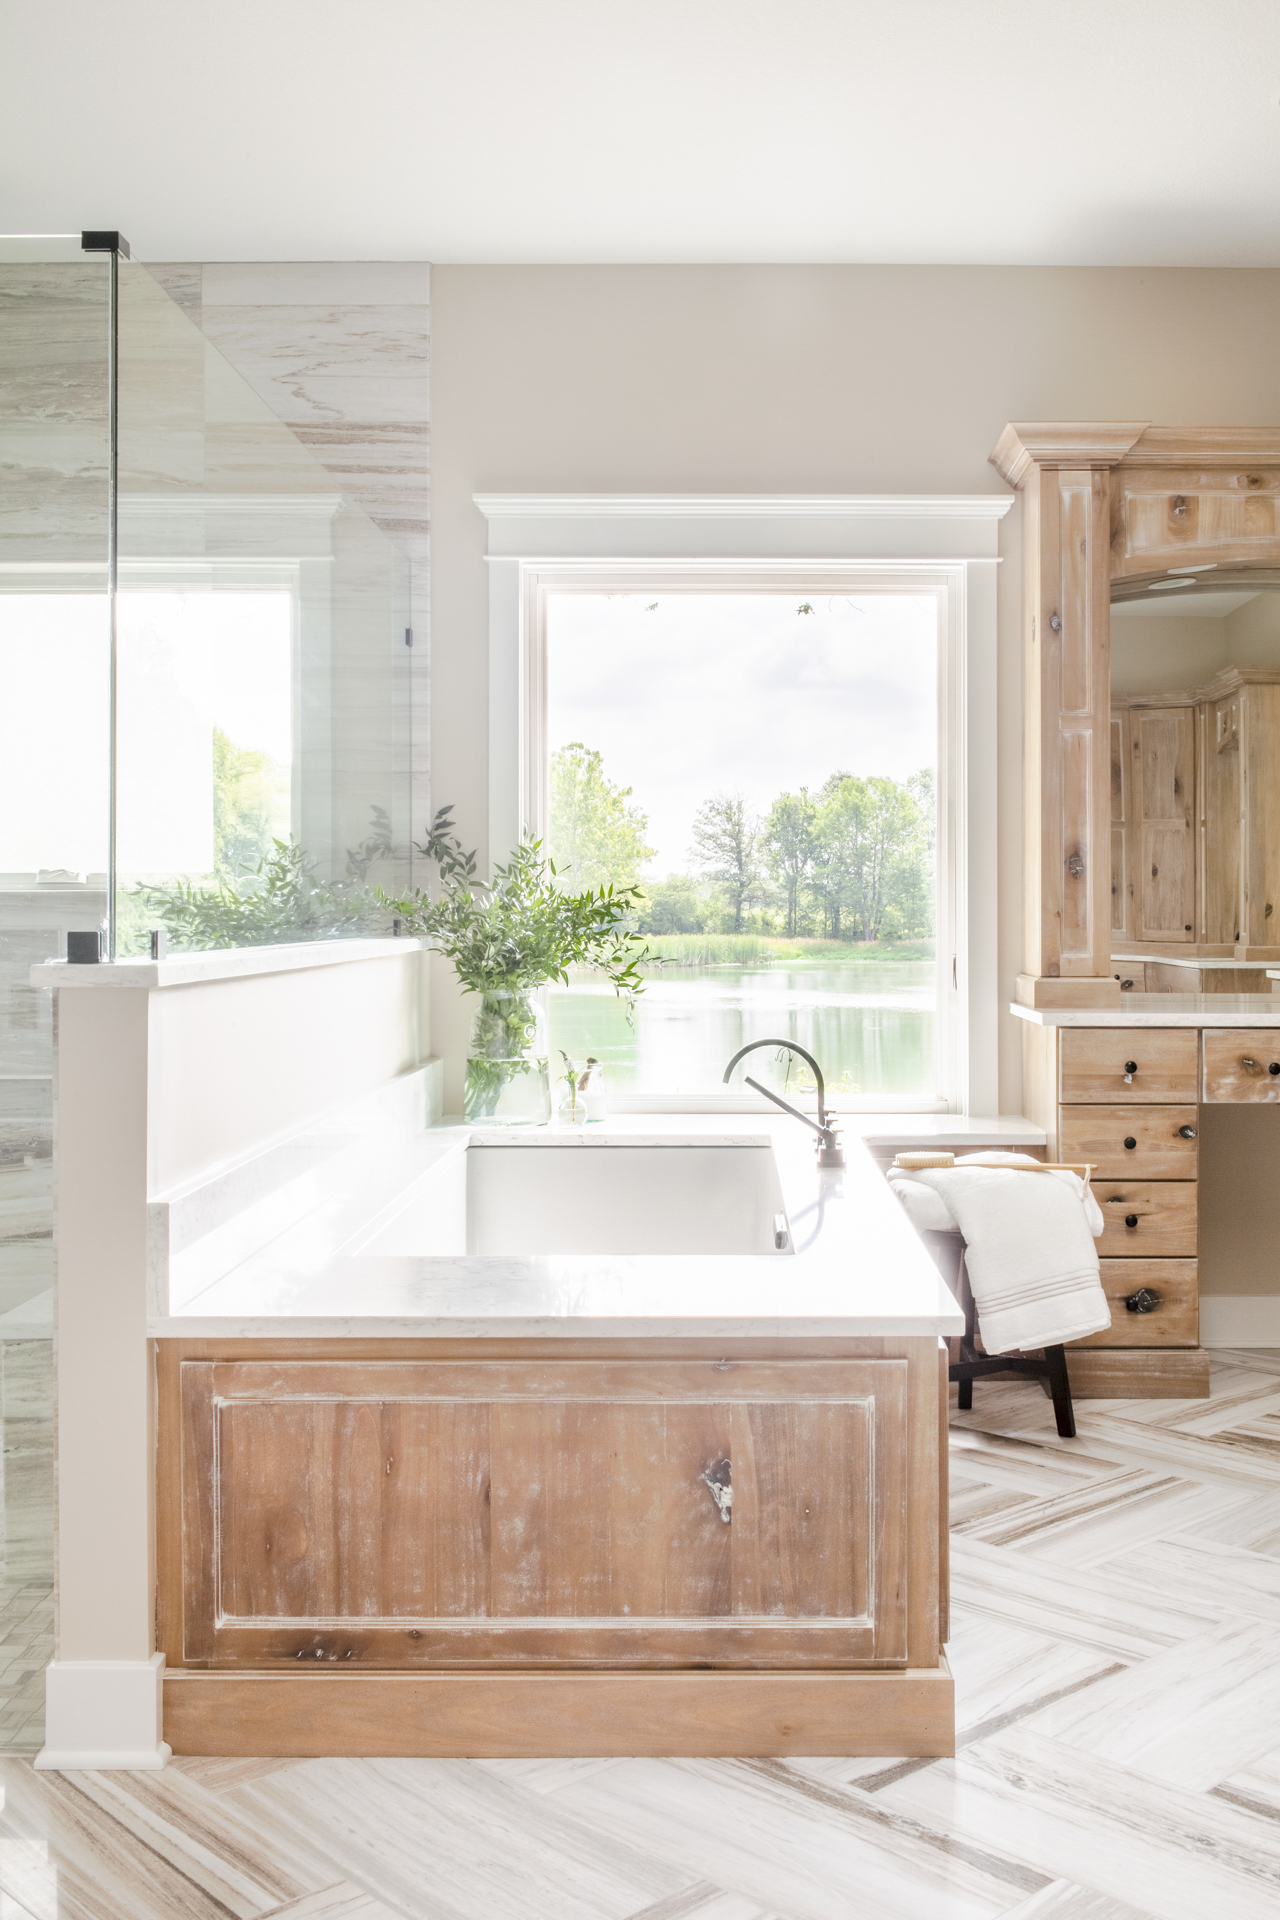 before-and-after-home-reveal-scout-and-nimble-lake-view-luxe-country-interior-design-luxury-bathroom-poplar-wood-doors-palo-sandro-marble-floor-herringbone-zero-entry-shower-basketweave-tile-9.jpg